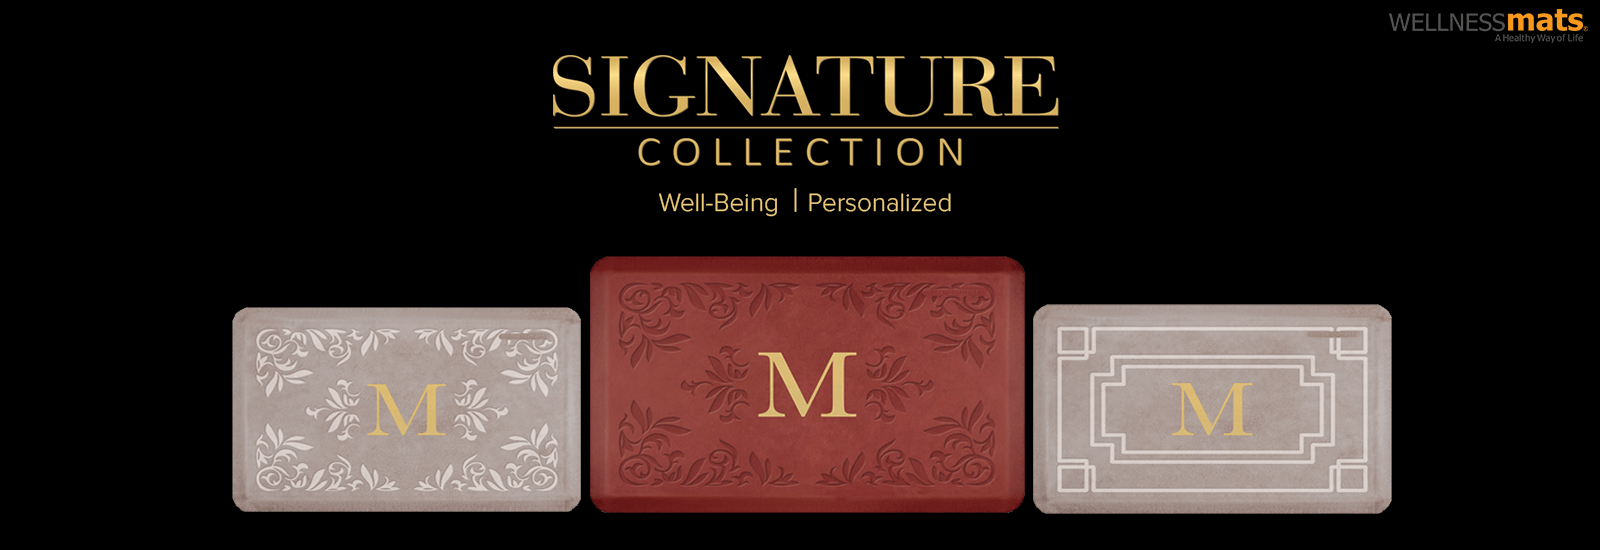 Wellness mats Signature banner